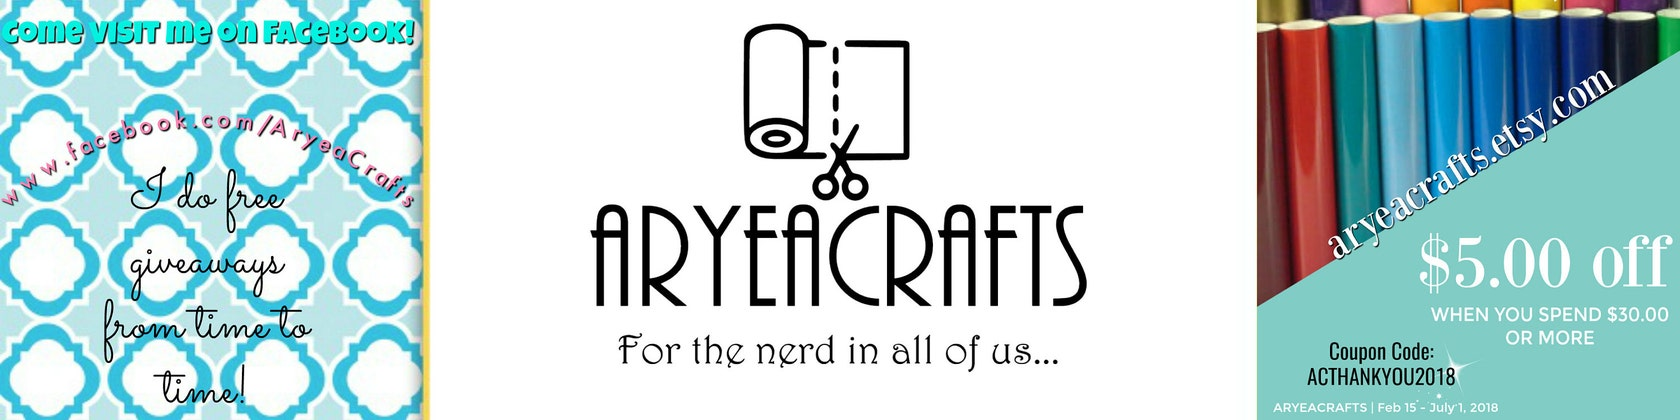 Aryeacrafts items by jacalyn elliott shedd by aryeacrafts on etsy aryeacrafts fandeluxe